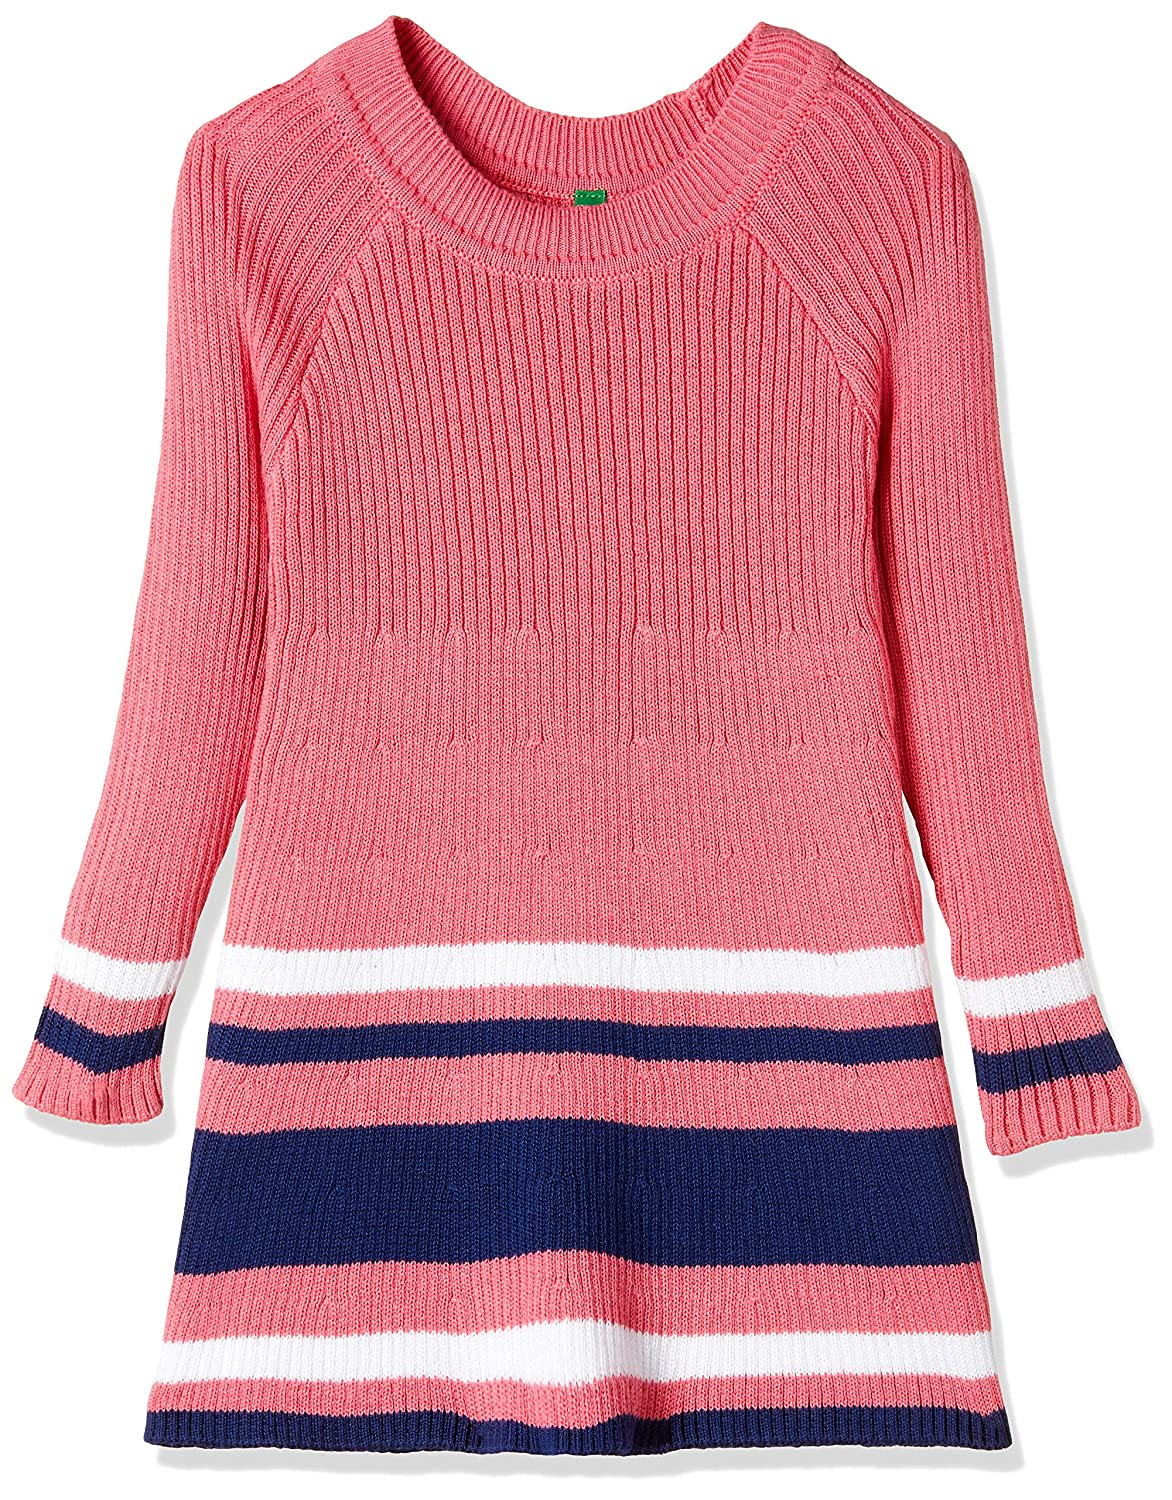 8af3c2027 United Colors Of Benetton Girls  Dress  Amazon.in  Clothing ...